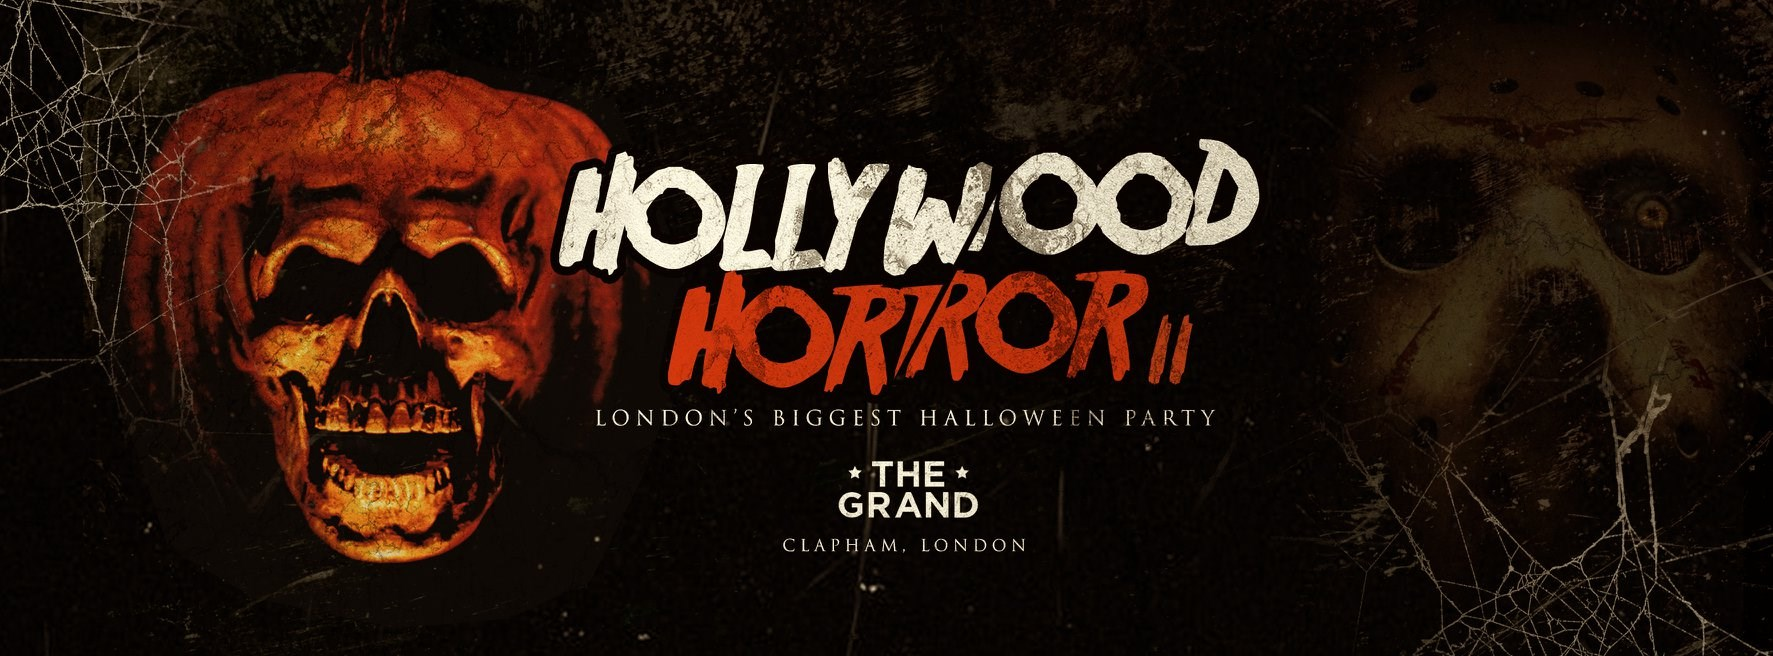 Hollywood Horror | Halloween at The Clapham Grand